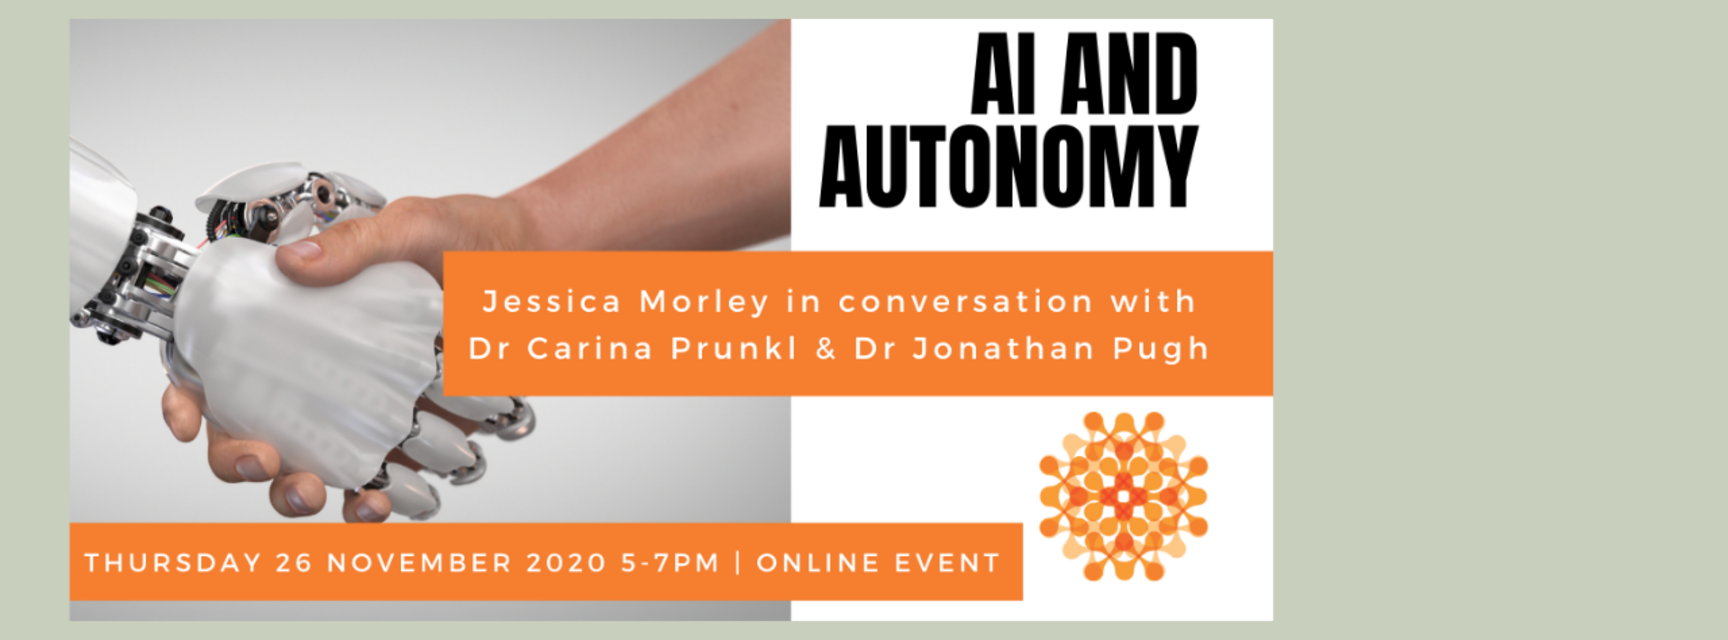 Robot hand shaking human hand. Text in orange banners reads 'AI and Autonomy. Jessica Morley in conversation with Dr Carina Prunkl and Dr Jonathan Pugh. Thursday 26th November 2020, 5pm to 6pm, online event.'